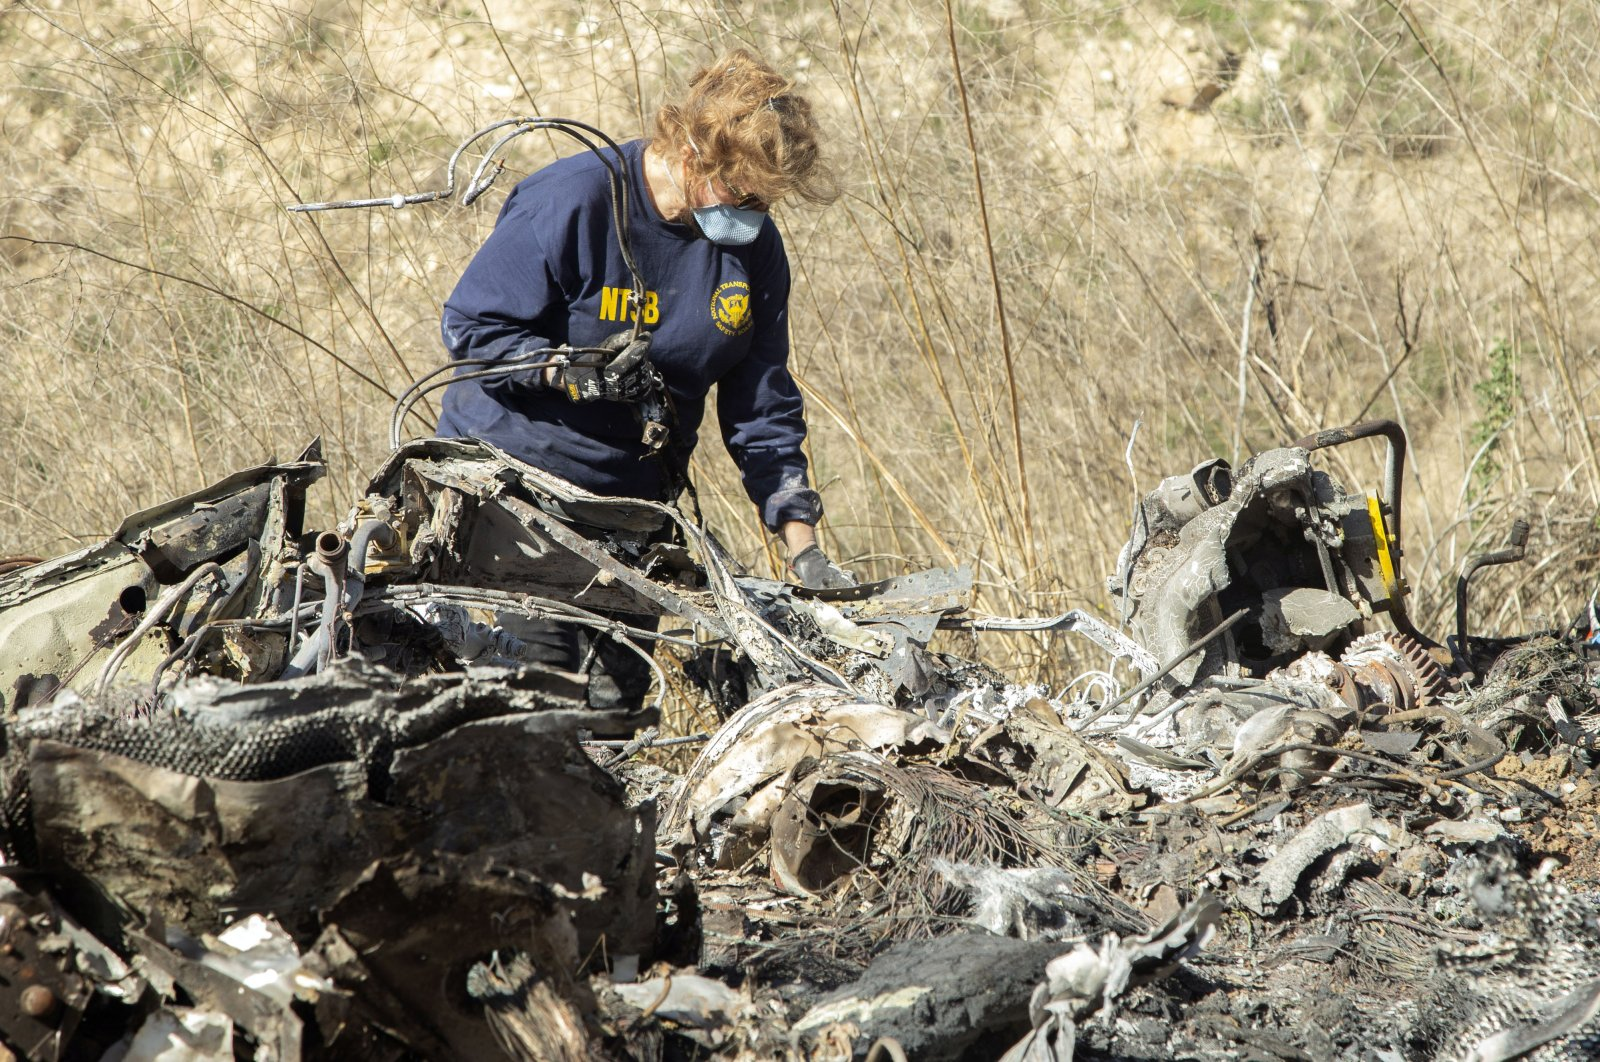 An NTSB investigator examines wreckage as part of the investigation of a helicopter crash that killed former NBA basketball player Kobe Bryant, his 13-year-old daughter, Gianna, and seven others, near Calabasas, California, U.S., Jan. 27, 2020. (AP Photo)